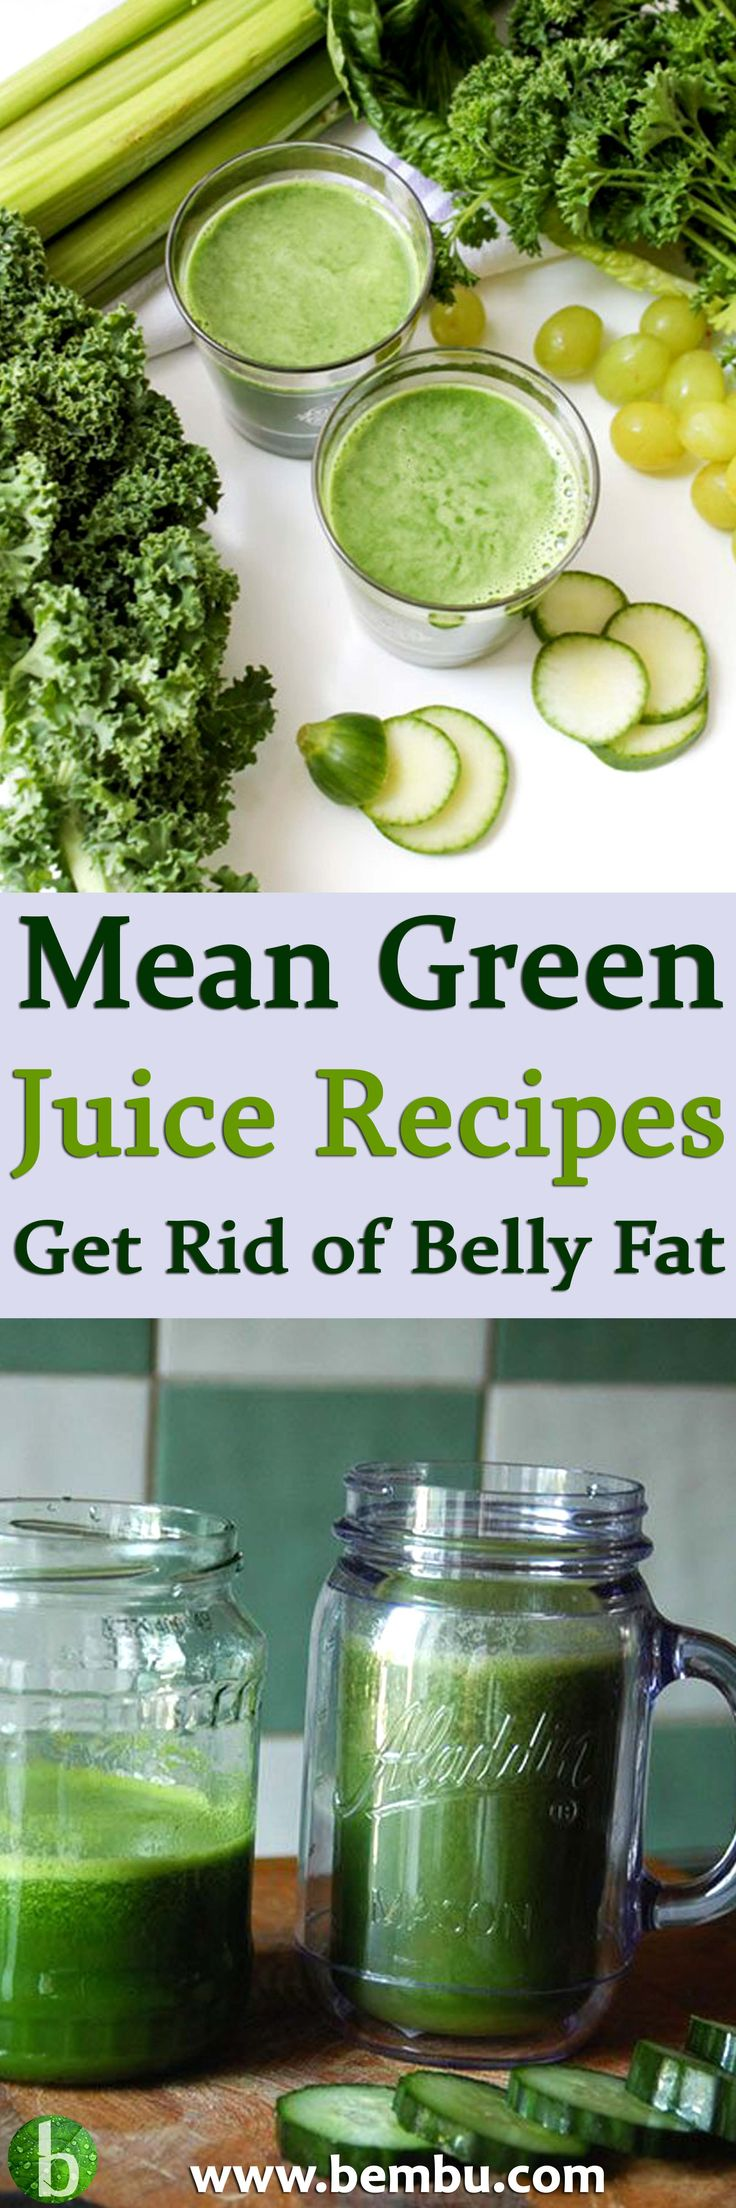 Similar to the green smoothie trend, mean green juice is taking over. Health Tips │ Health Ideas │Healthy Food │Food │Vitamin │Drinks │Detox │Smoothie │Juice #Health #Ideas #Tips #Vitamin #Healthyfood #Food #Vitamin #Drinks #Detox #Smoothie #Juice